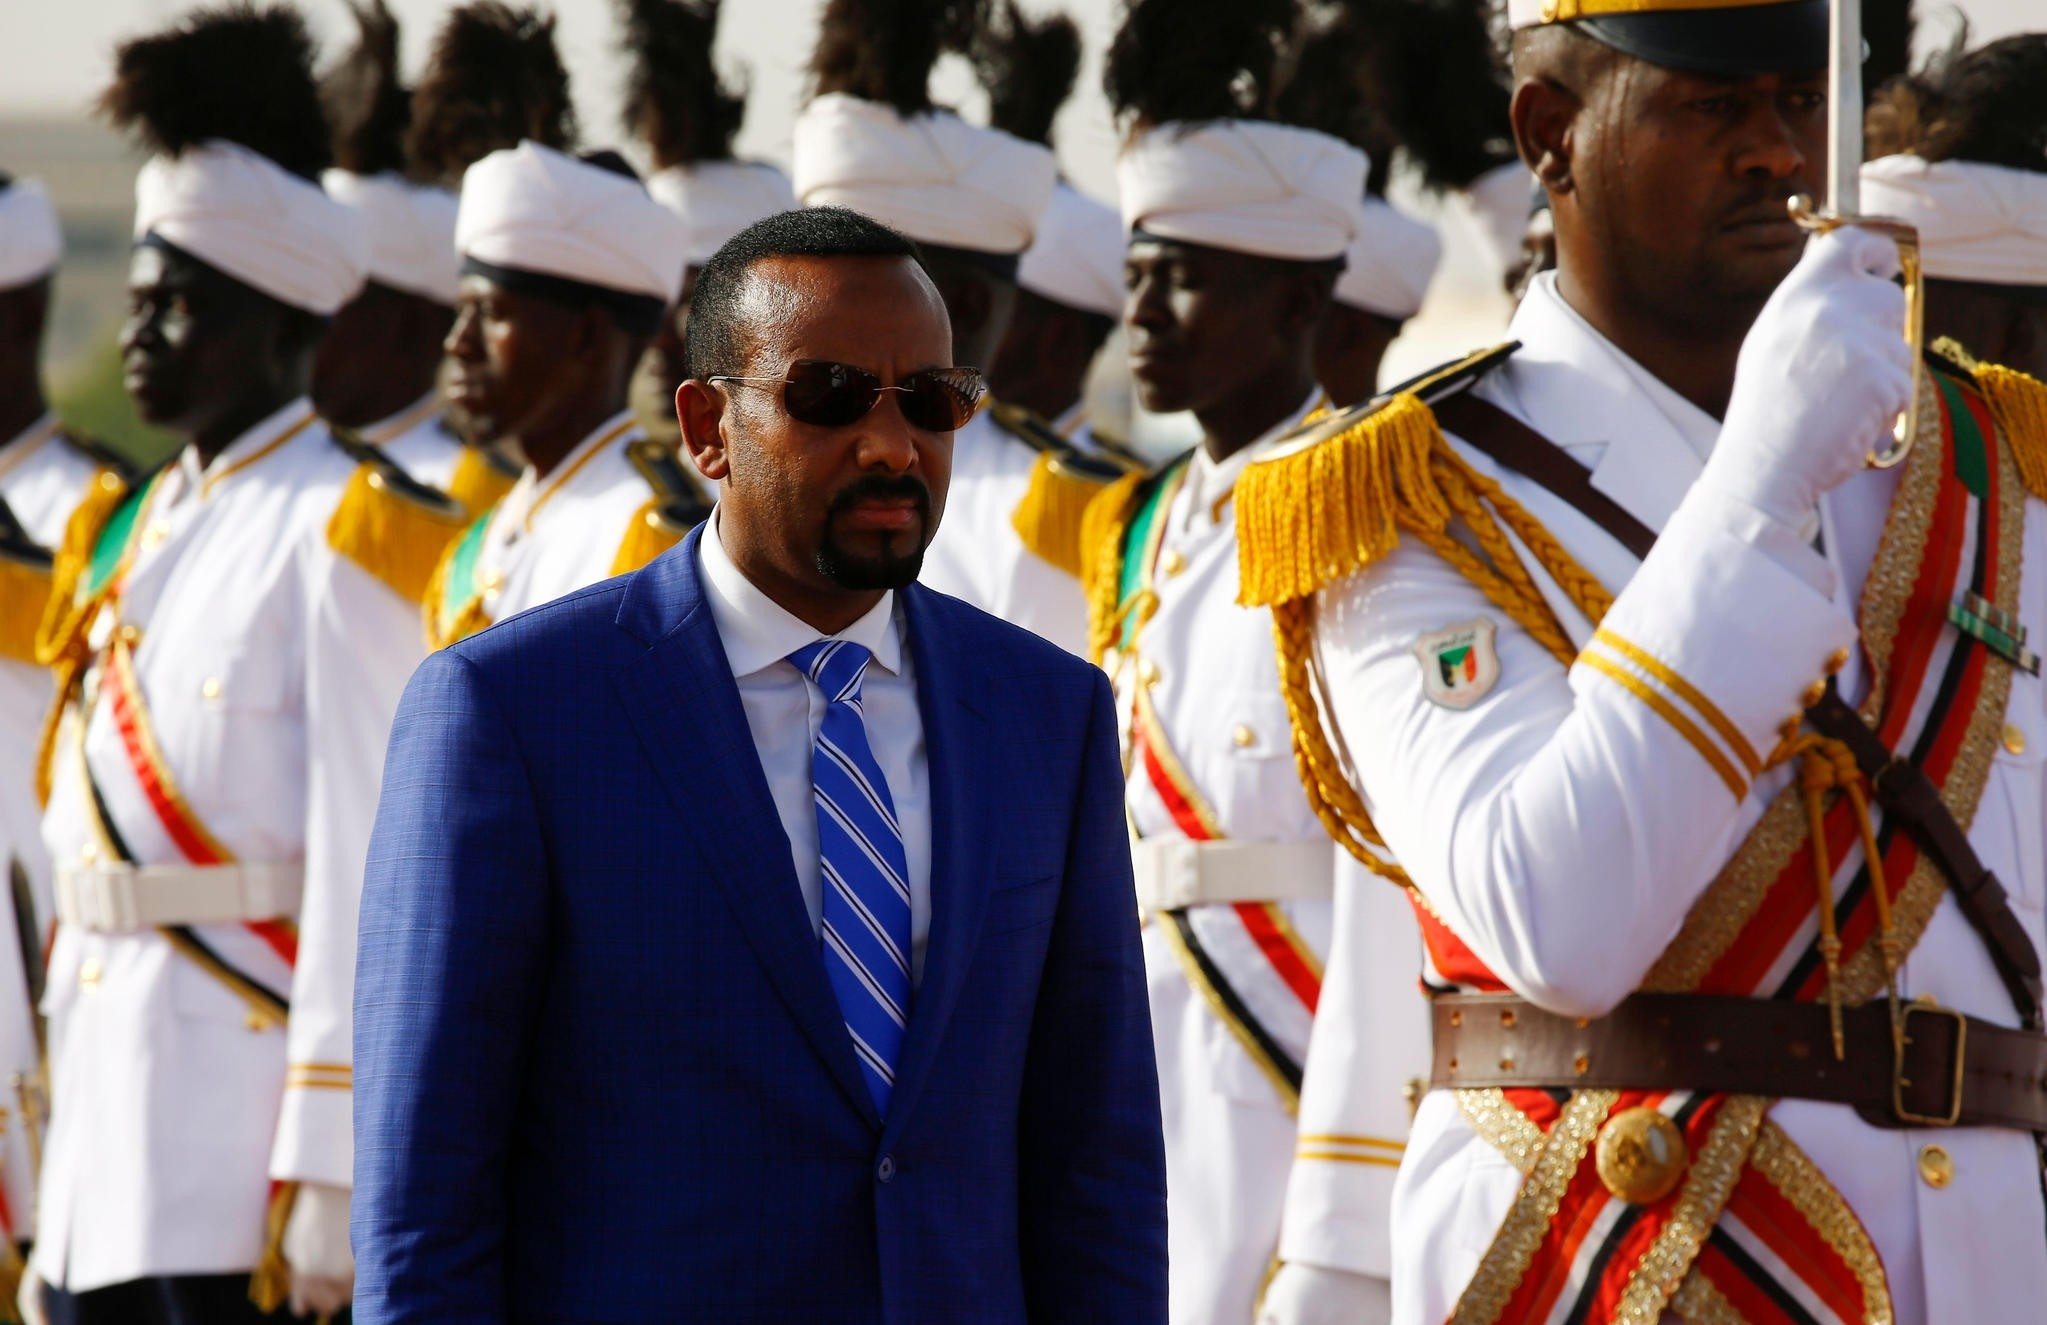 Ethiopian Prime Minister Abiy Ahmed reviews the honour guard following his arrival in Khartoum for an official visit to Sudan on May 2, 2018.